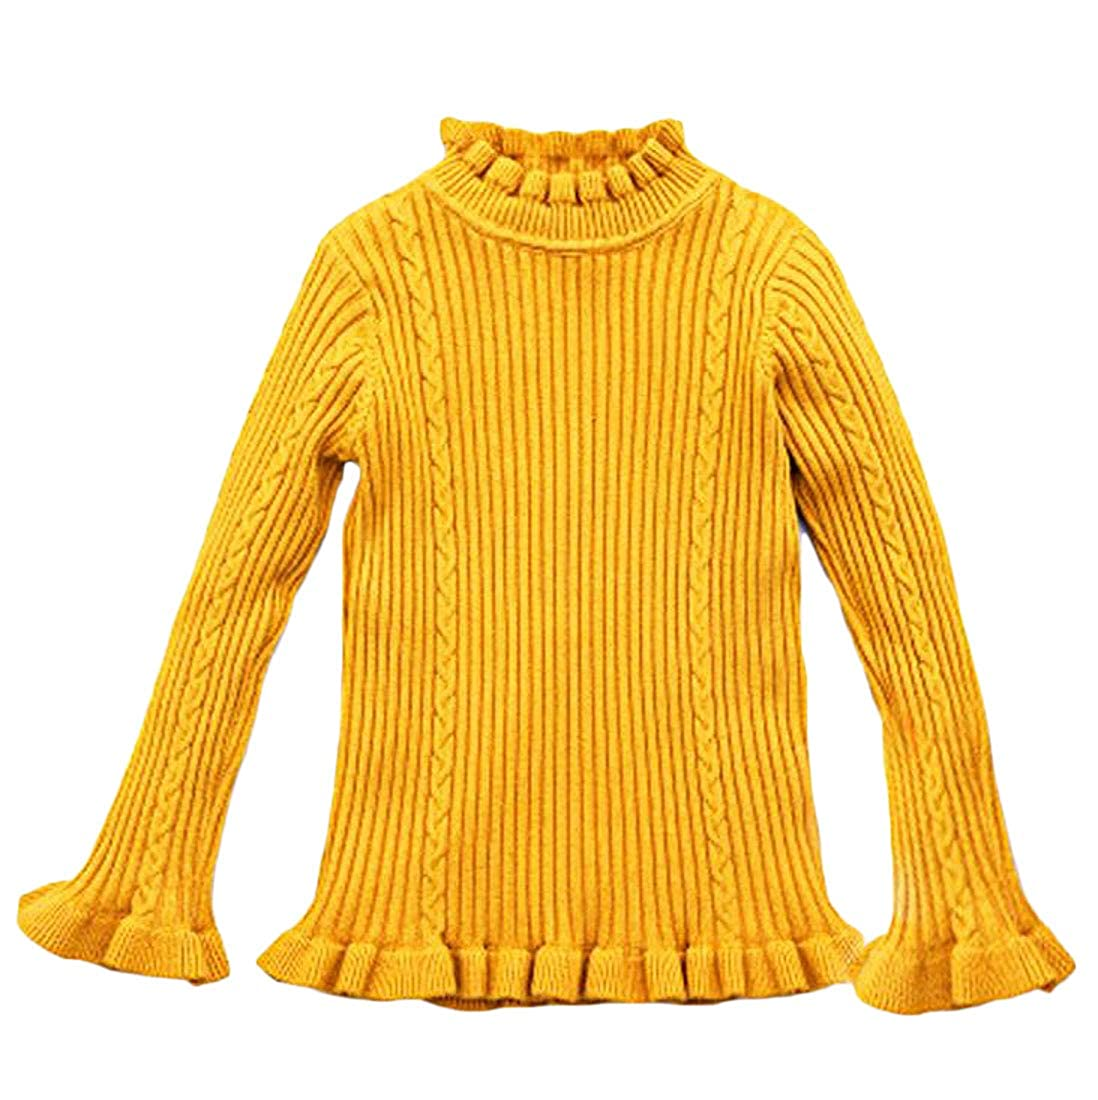 Easonp Girls Fit Fashion Jumper Knitted Pullover Cute Sweater